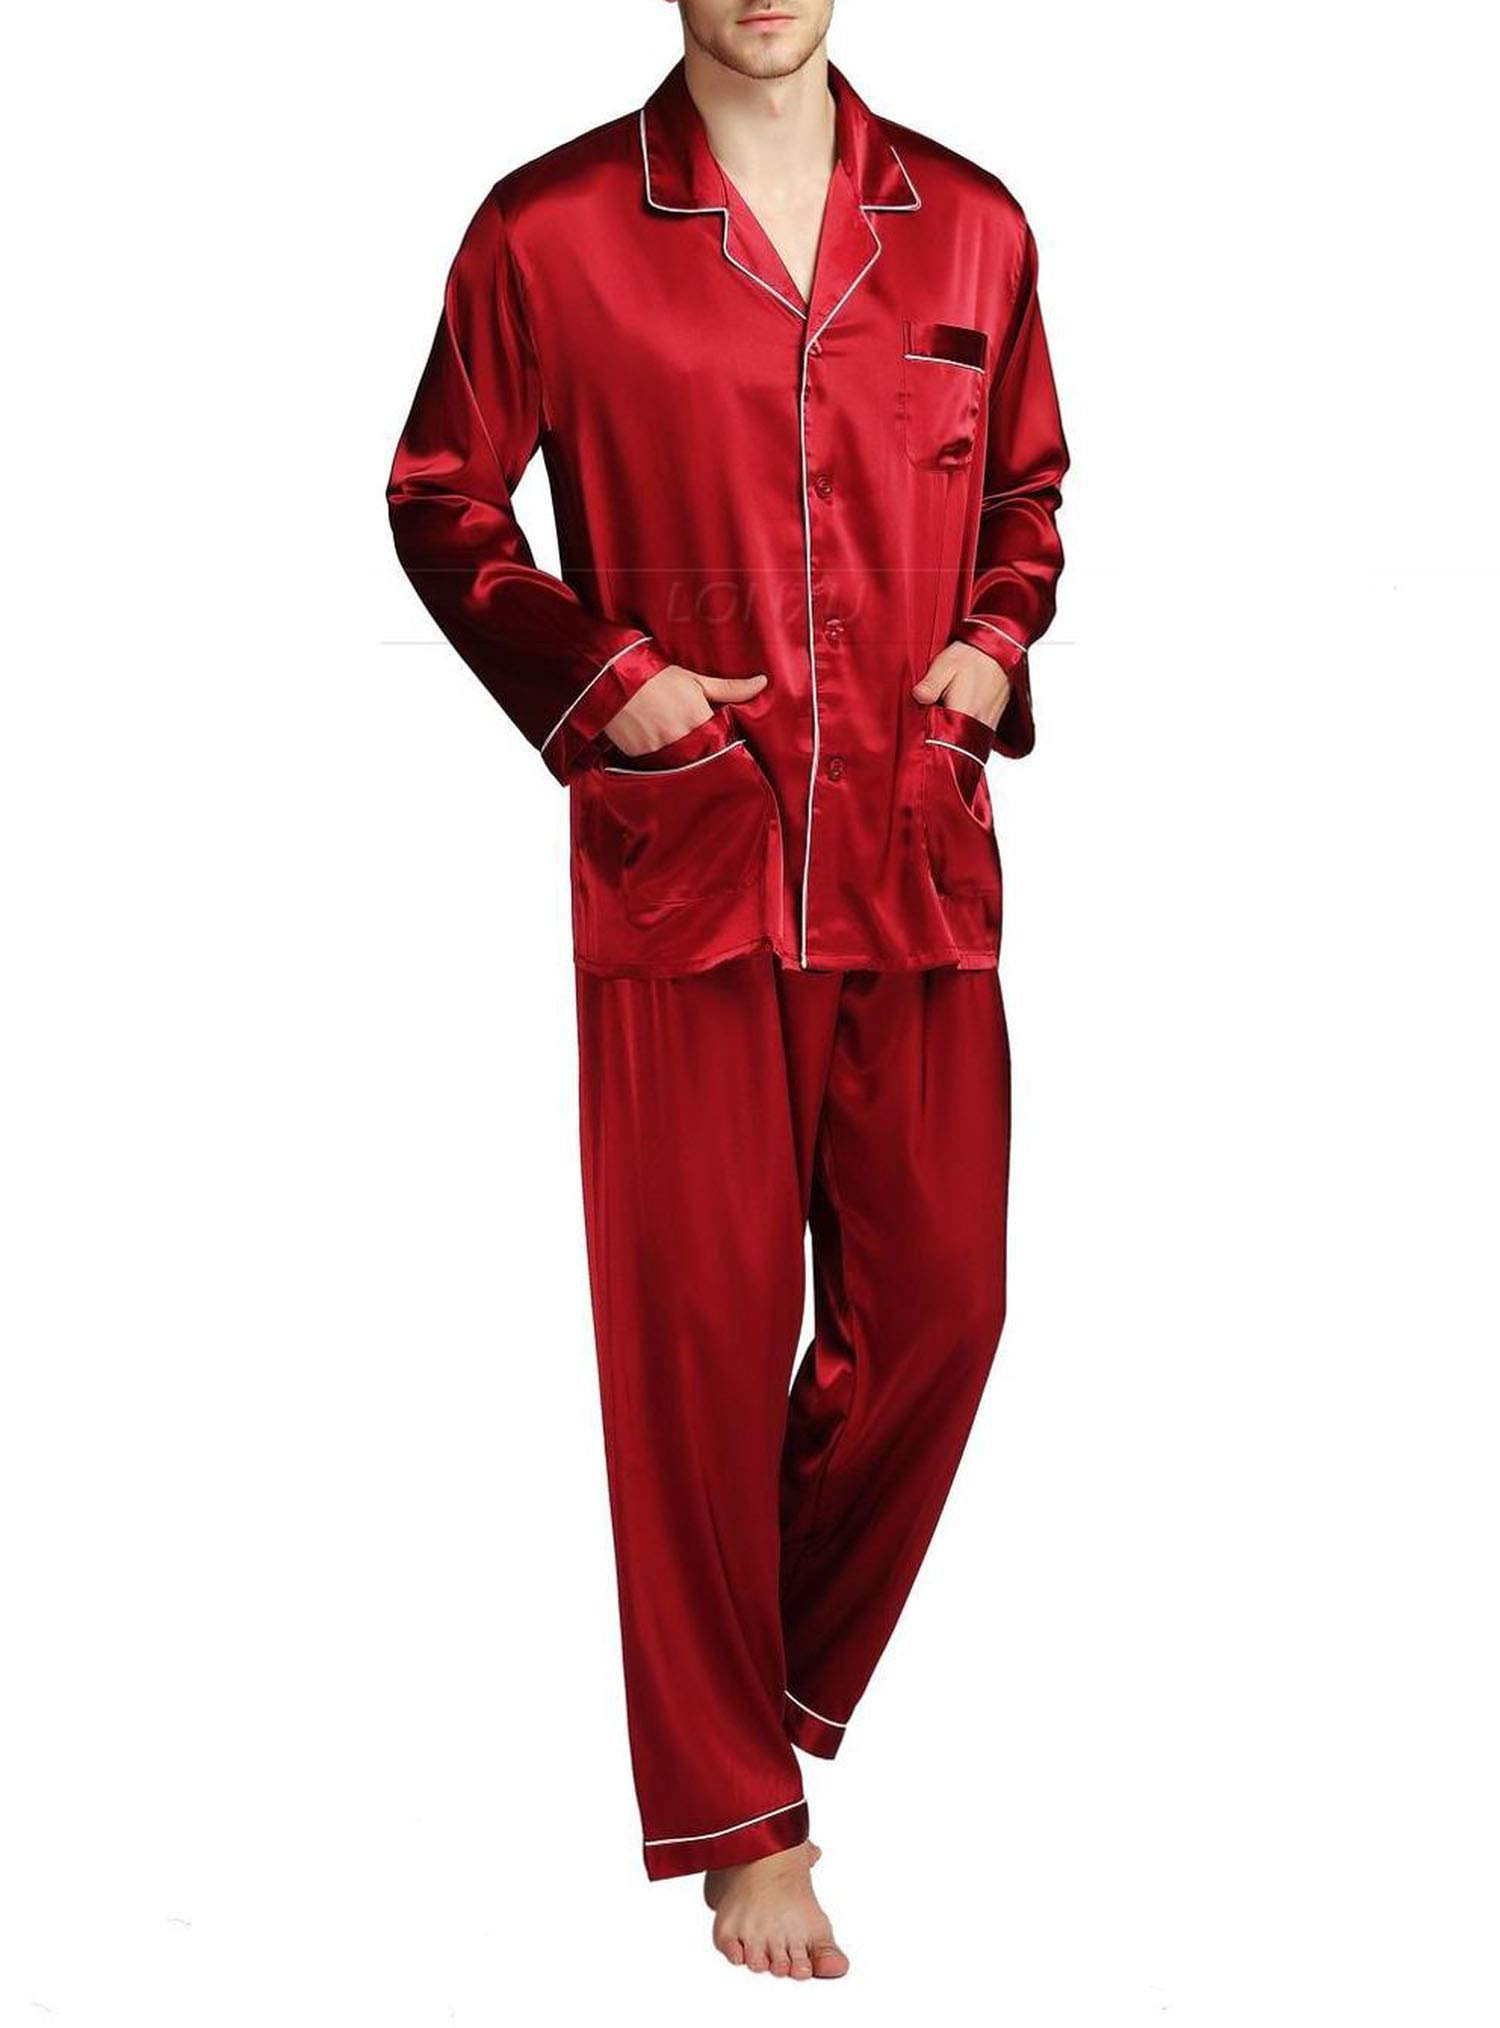 Mens Silk Satin Pajamas Set Pajama Pyjamas Set Sleepwear Loungewear,Wine Red,L